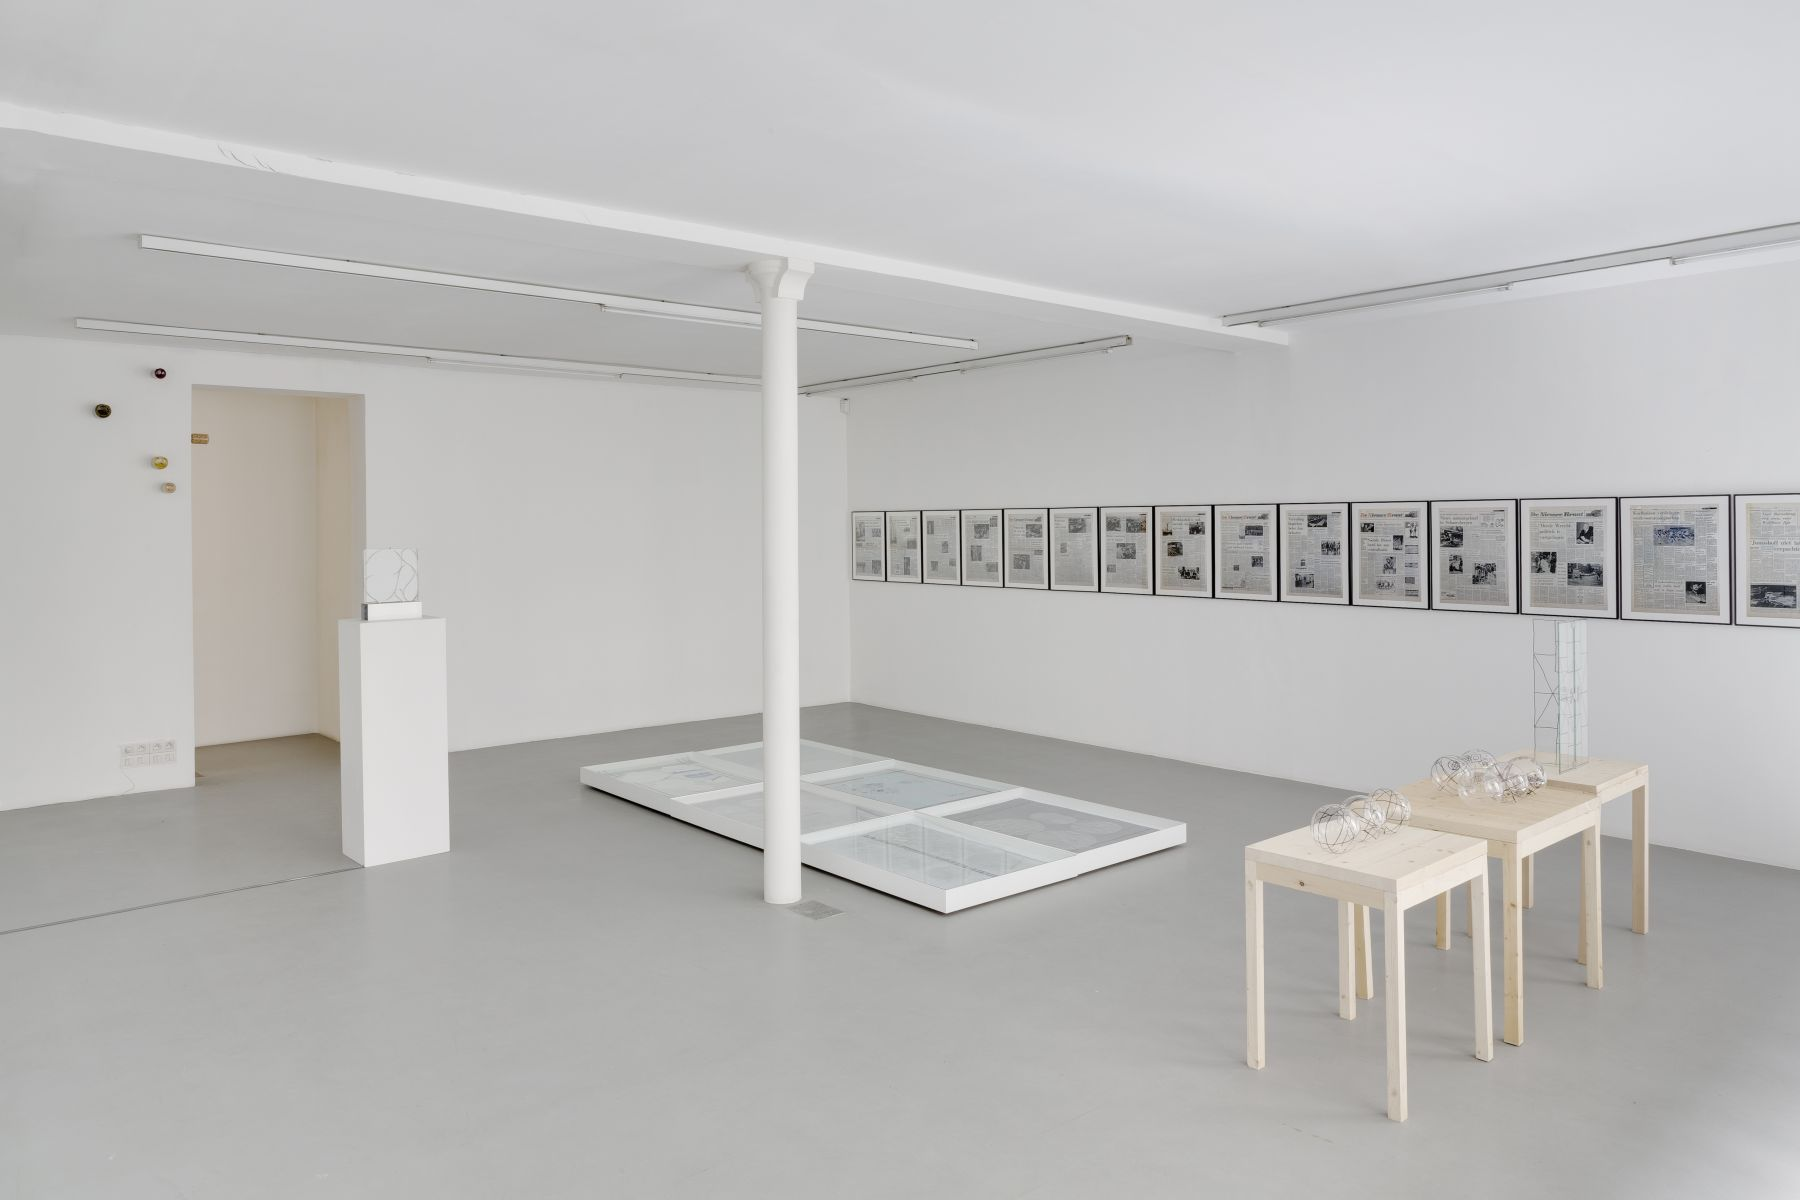 Push Pins in Elastic Space, curated by Gabriel Kuri – installation view 6